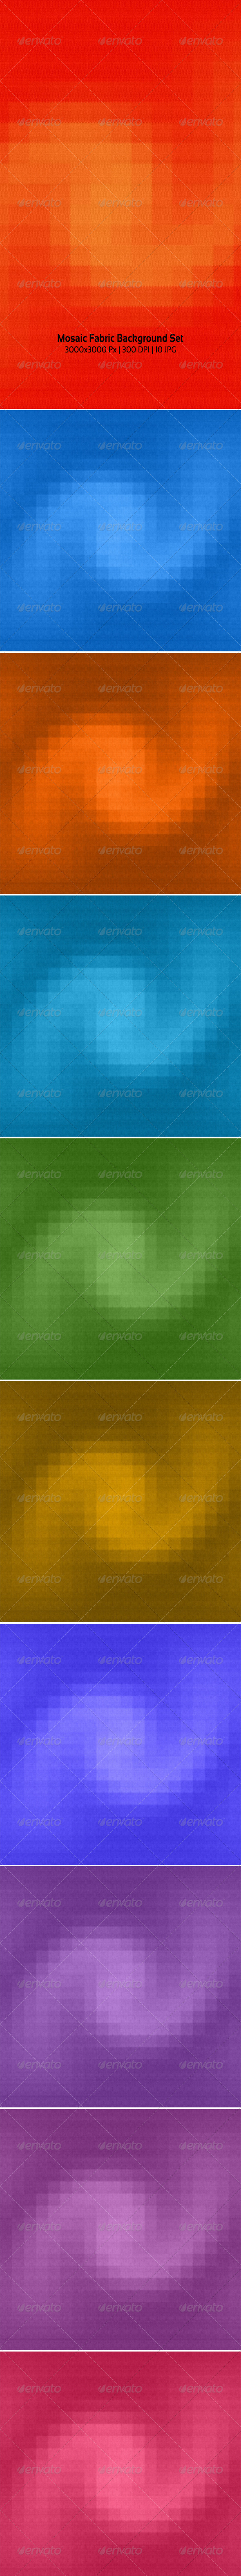 Mosaic Fabric Background Set - Backgrounds Graphics